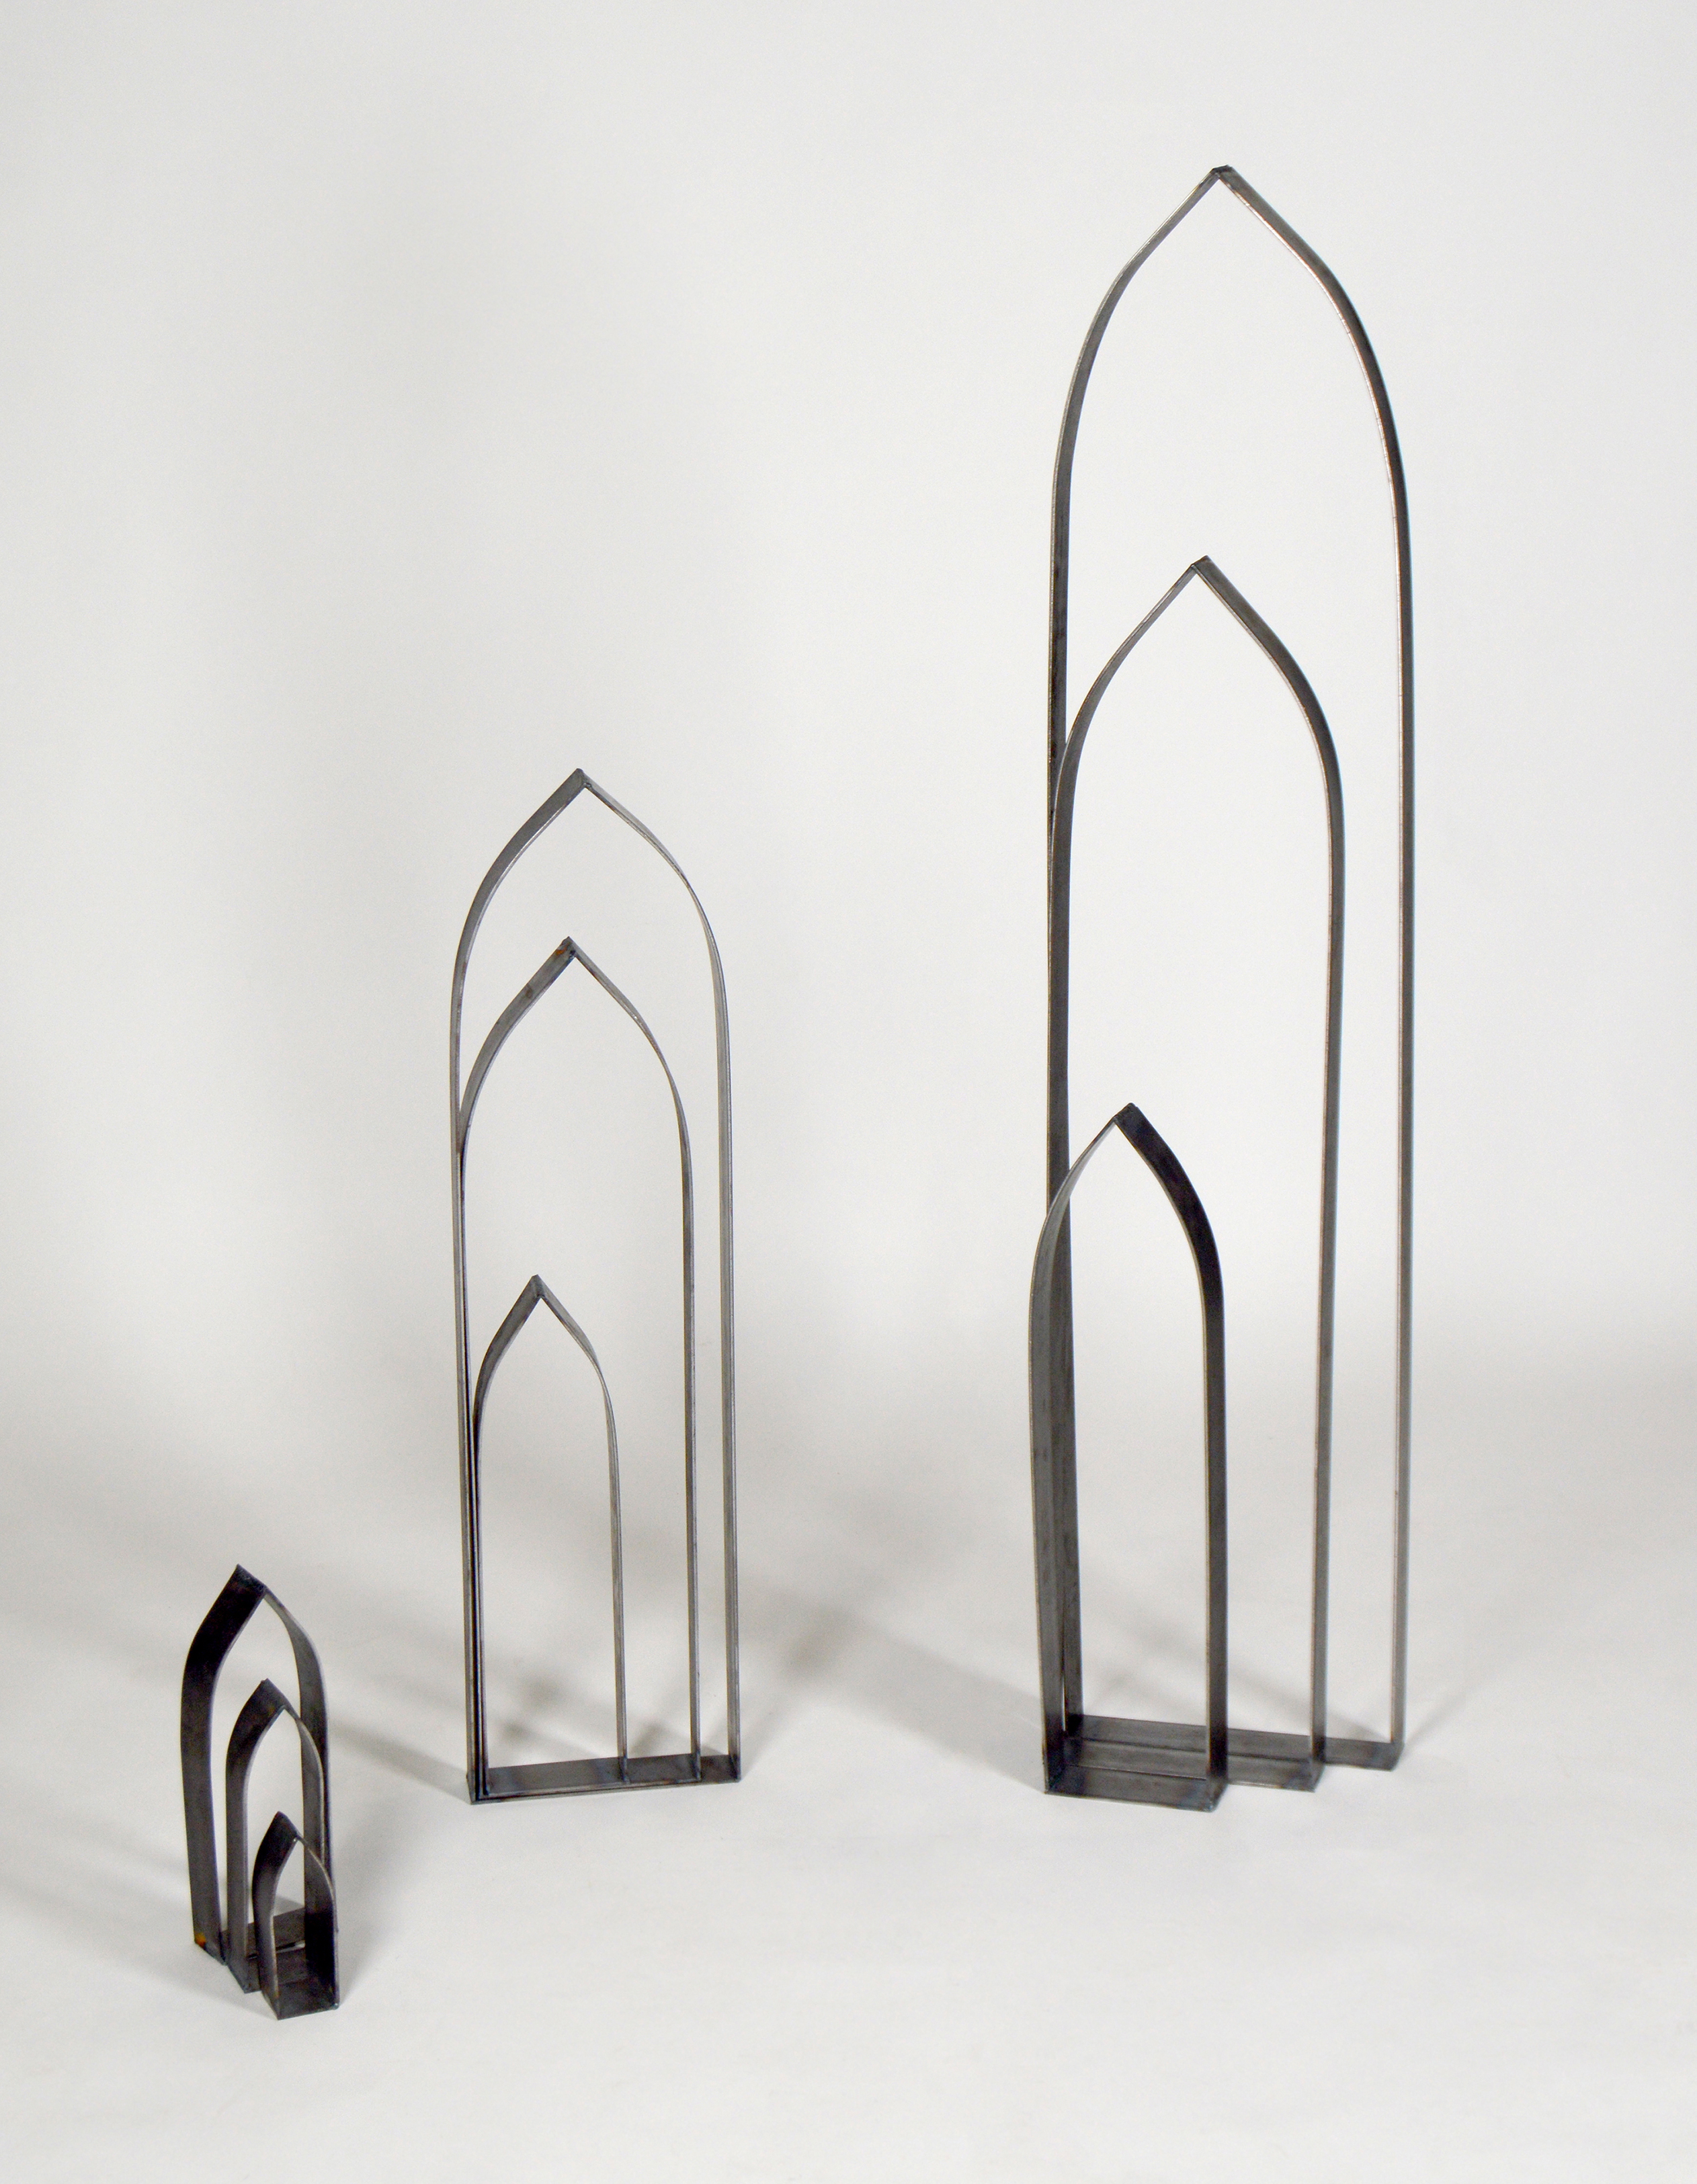 Untitled Arches No 2